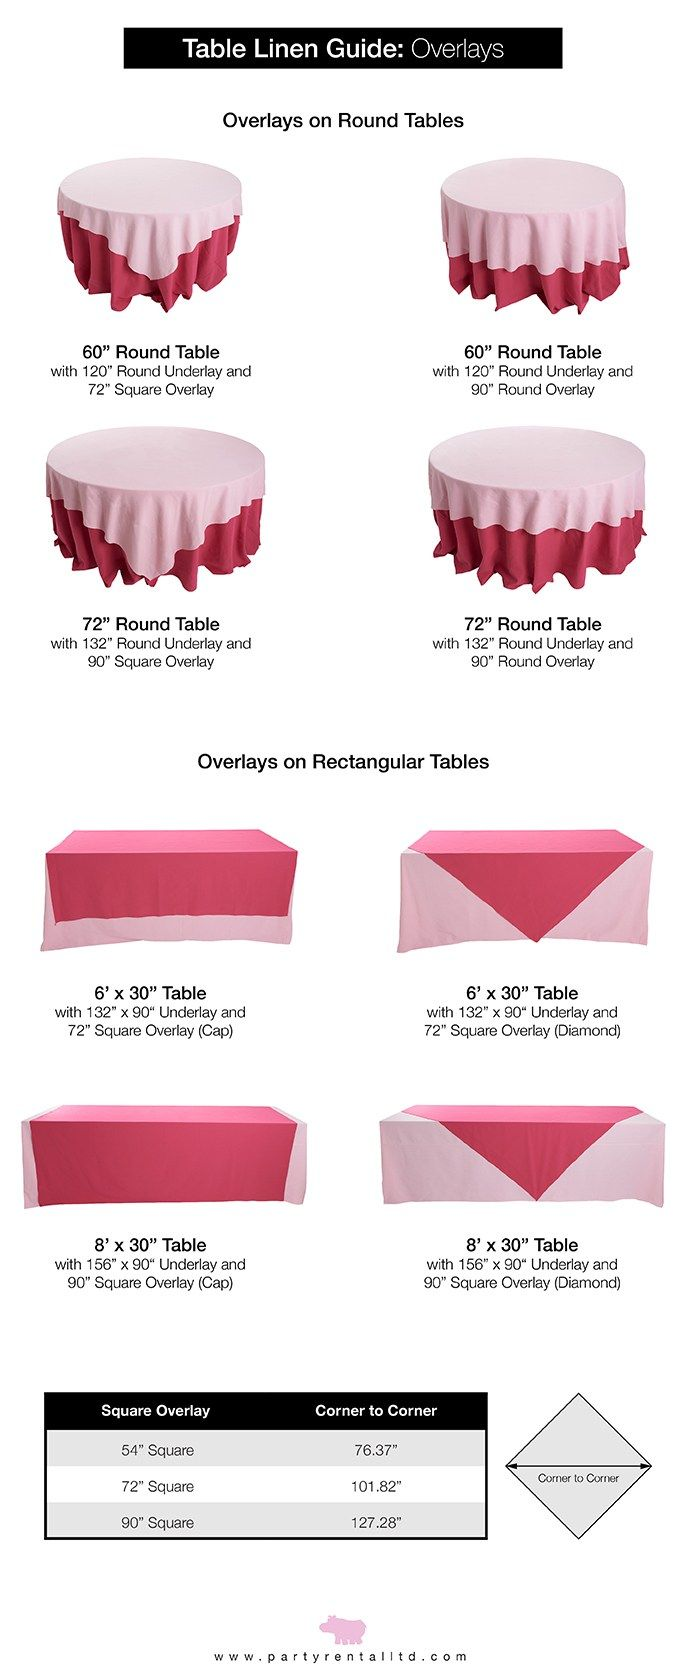 Best 25+ Round Table Settings Ideas On Pinterest | Round Table Wedding,  Round Table Centerpieces And Round Table Decorations